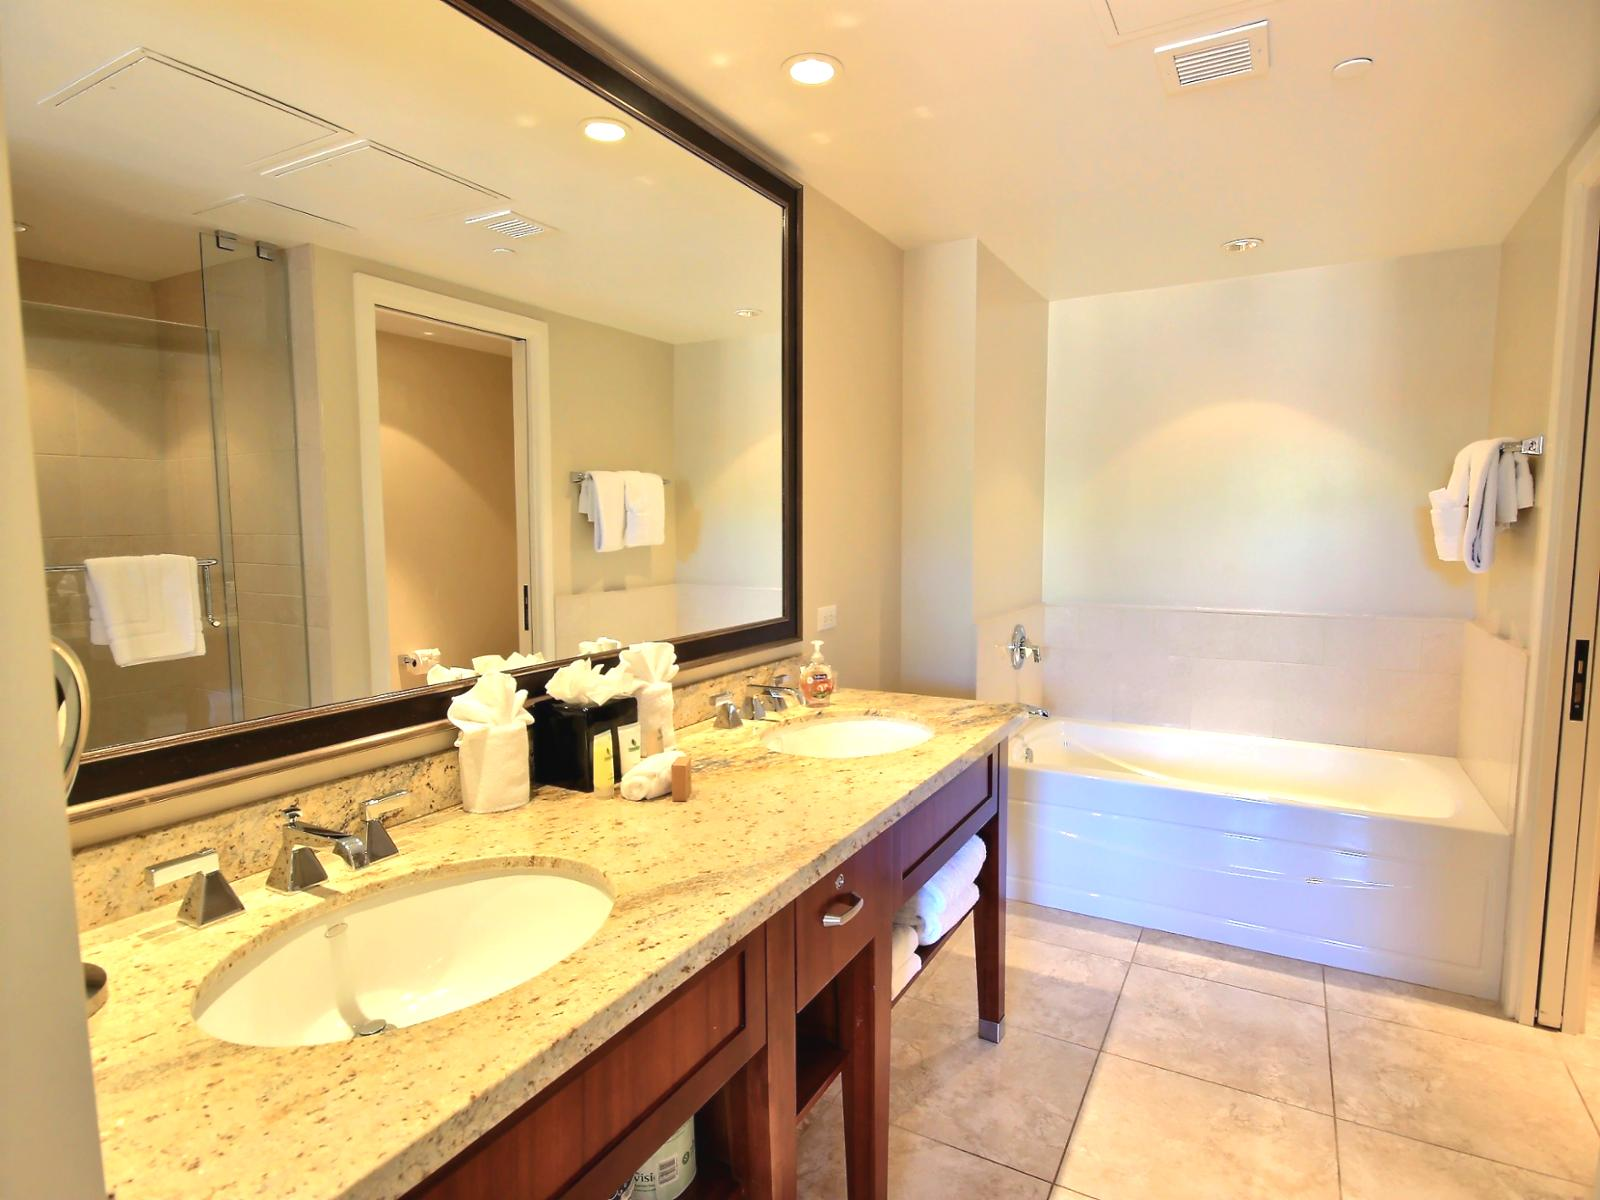 Large dual sink master bathroom with extra large vanity mirror.